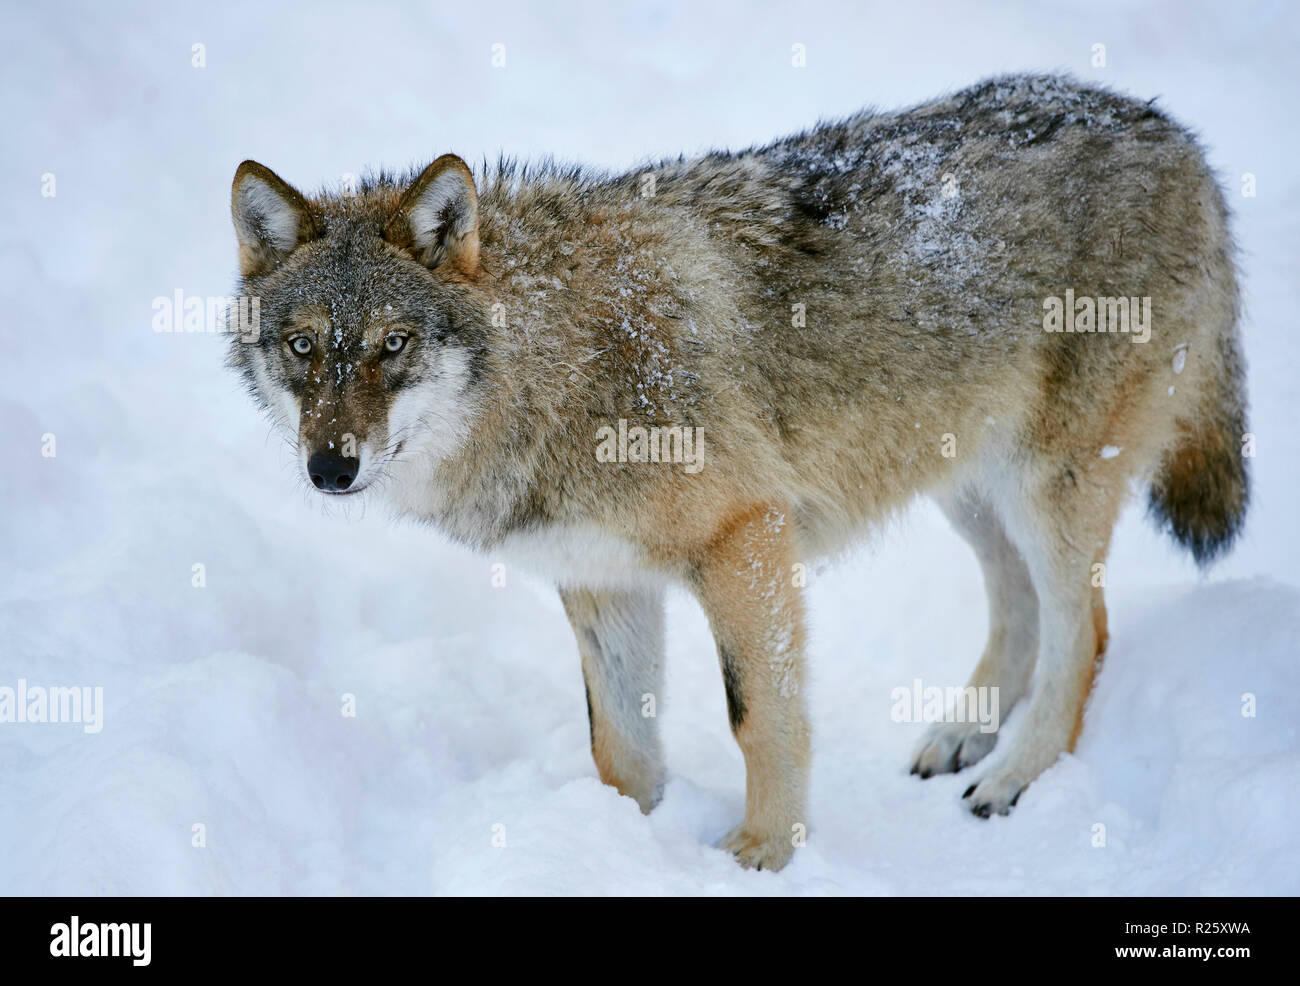 Eurasian wolf (Canis lupus lupus) standing in snow, Bavarian Forest National Park, Bavaria, Germany Stock Photo